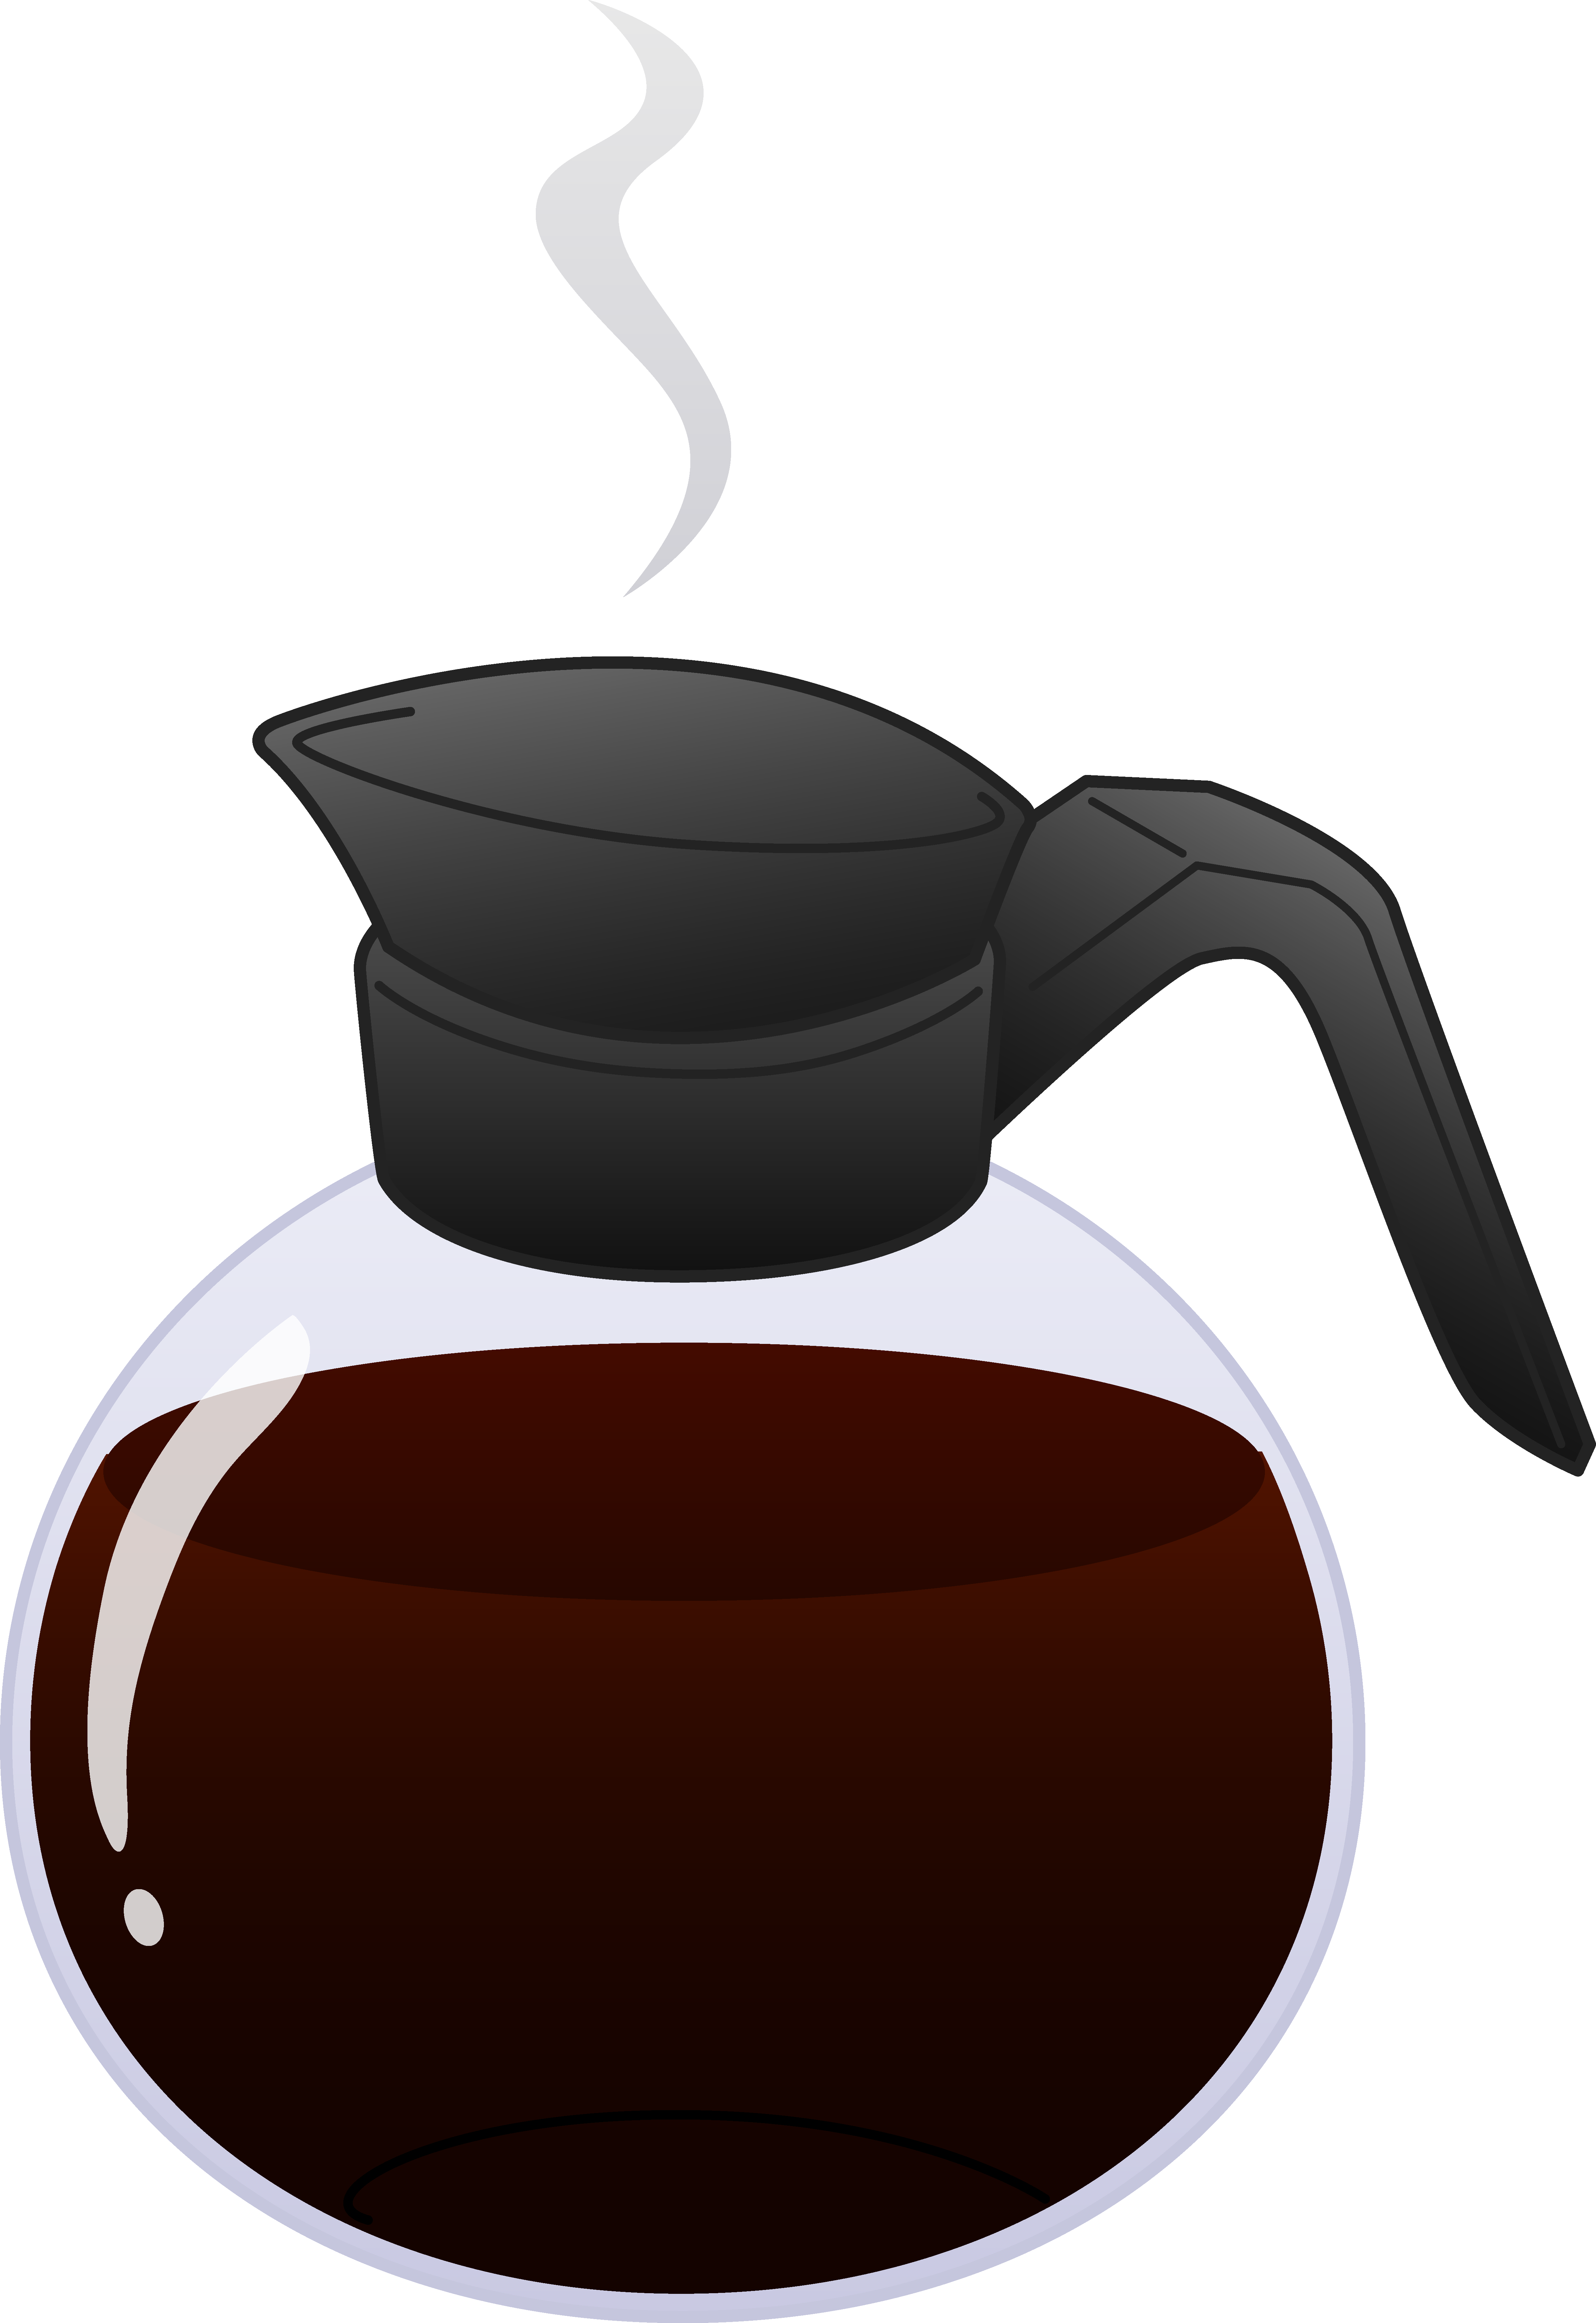 Coffee Pot Images - Cliparts.co